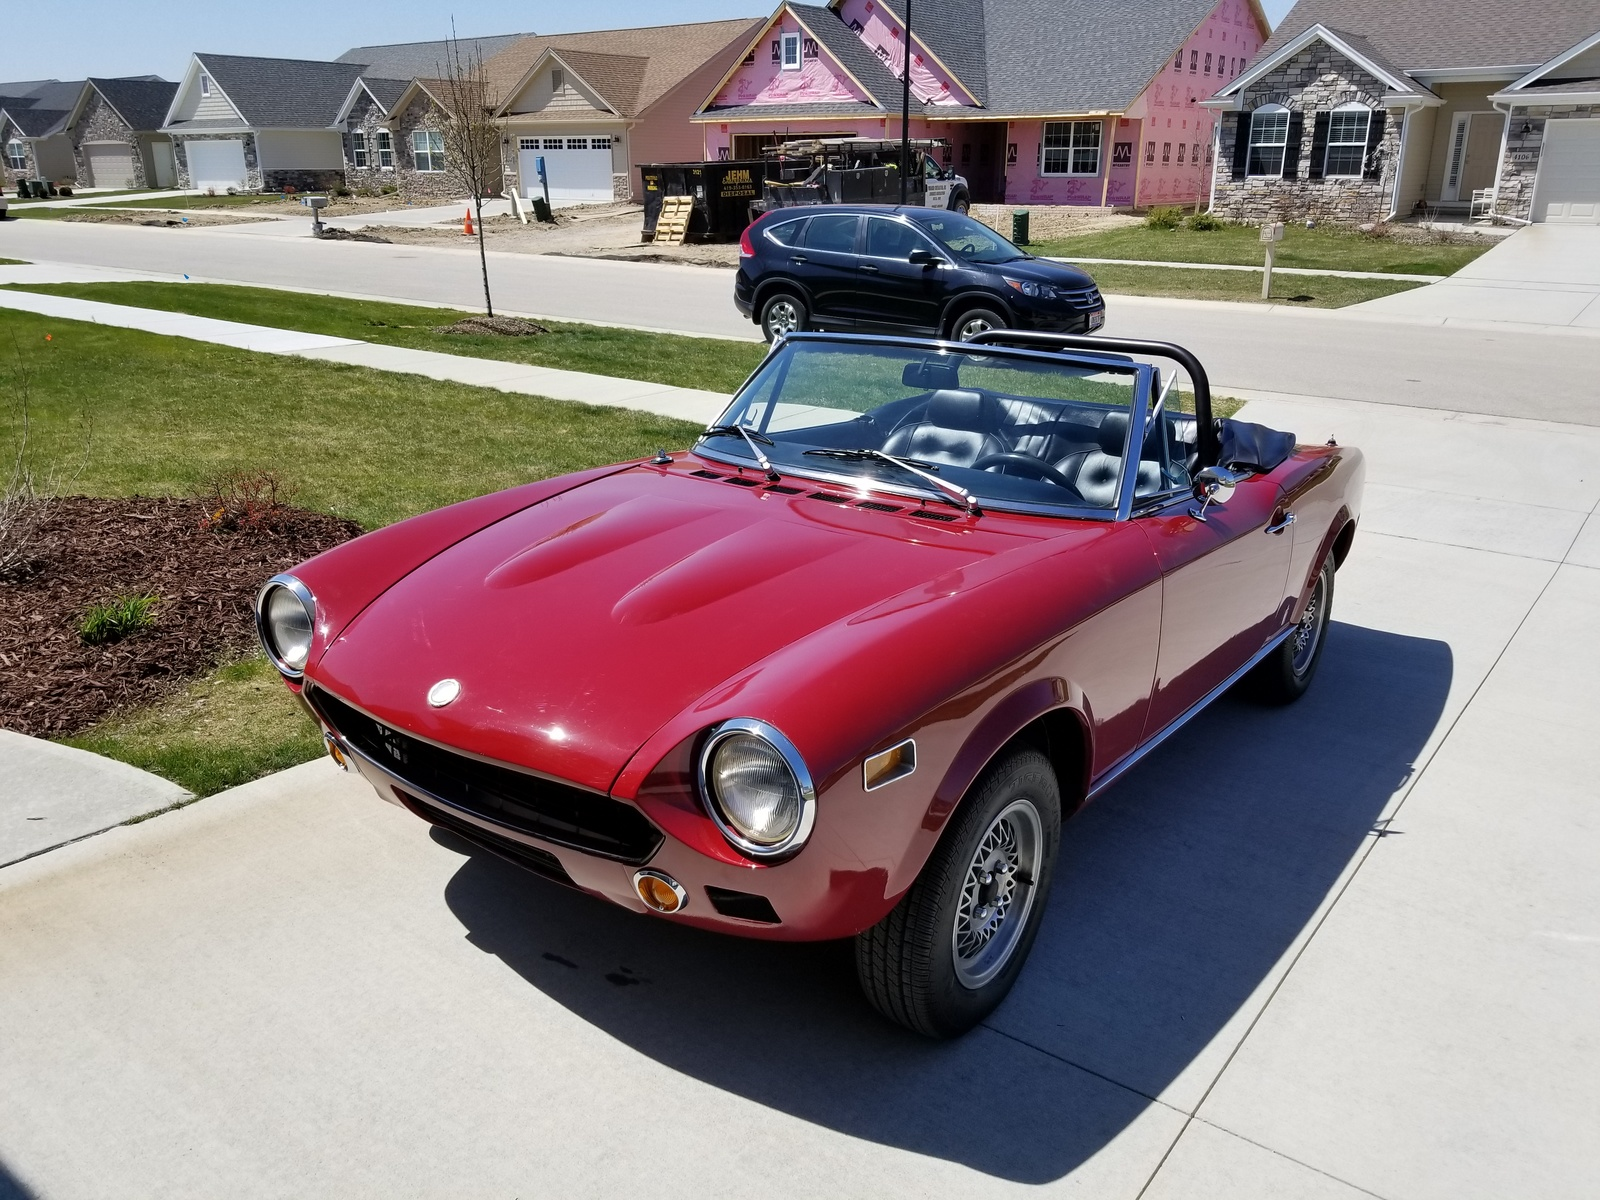 fiat 124 spider questions remove of rear bumper supports cargurus Fiat 500 by Gucci 1 answer